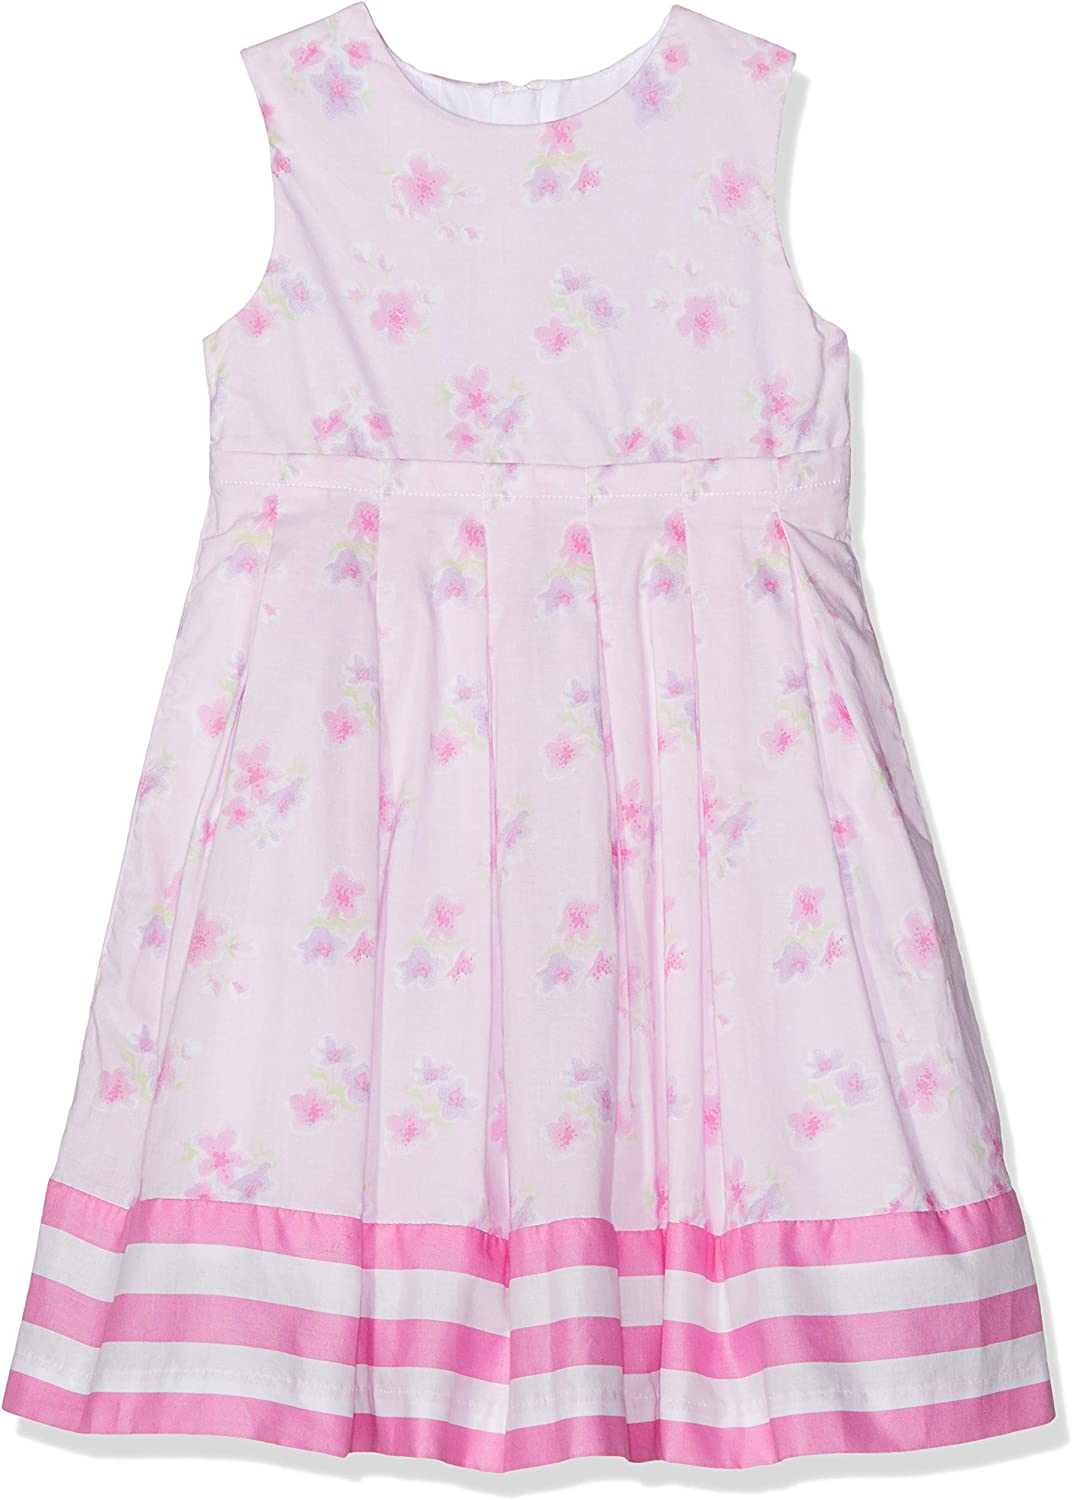 Chicco Girls Abito Senza Maniche Dress